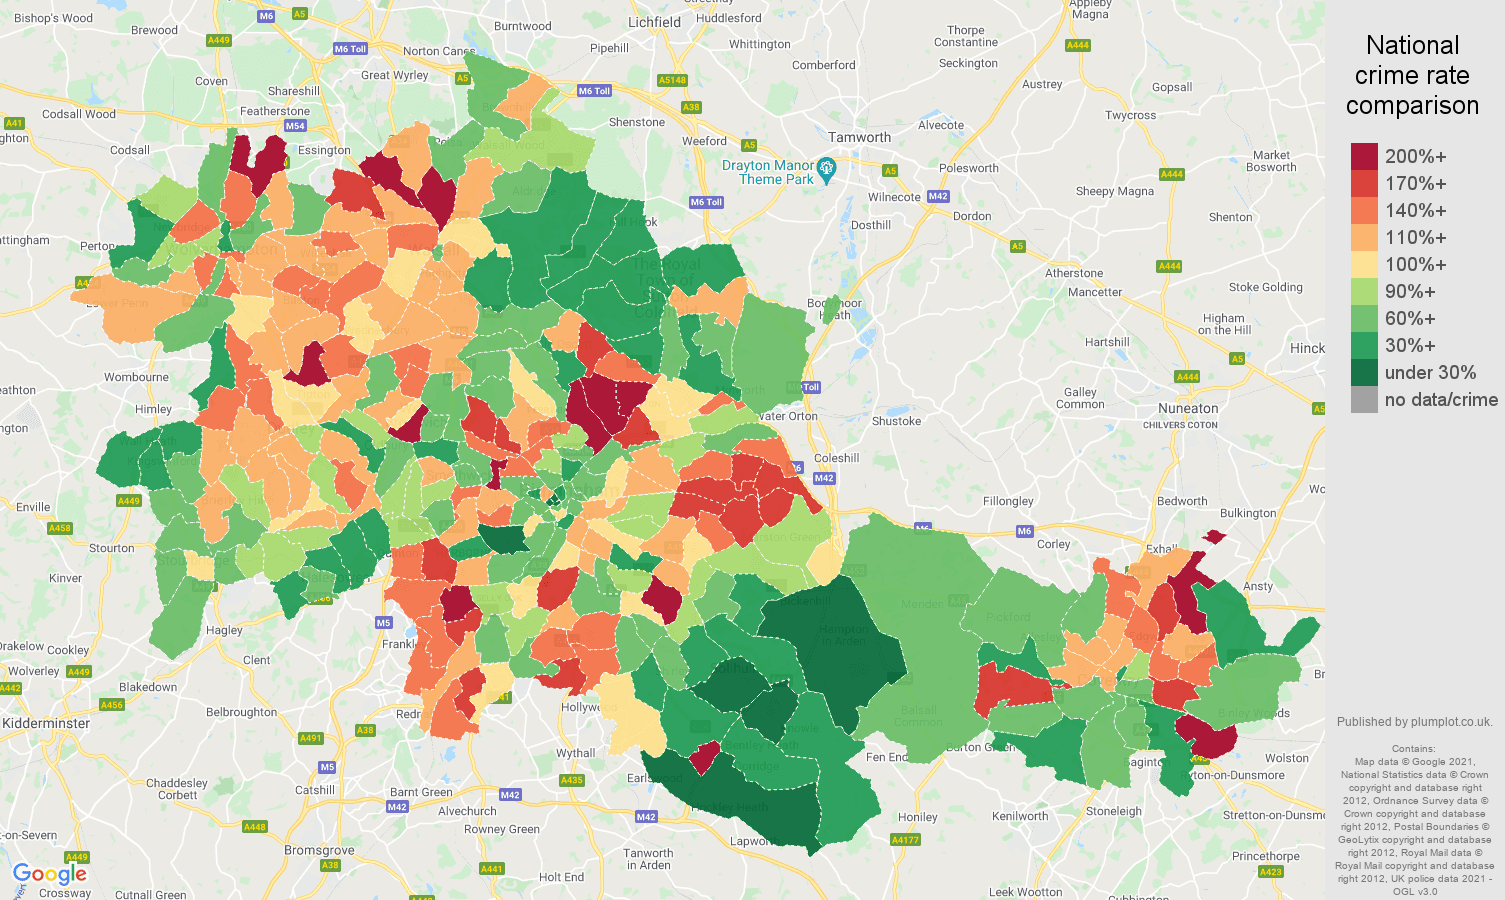 West Midlands county criminal damage and arson crime rate comparison map